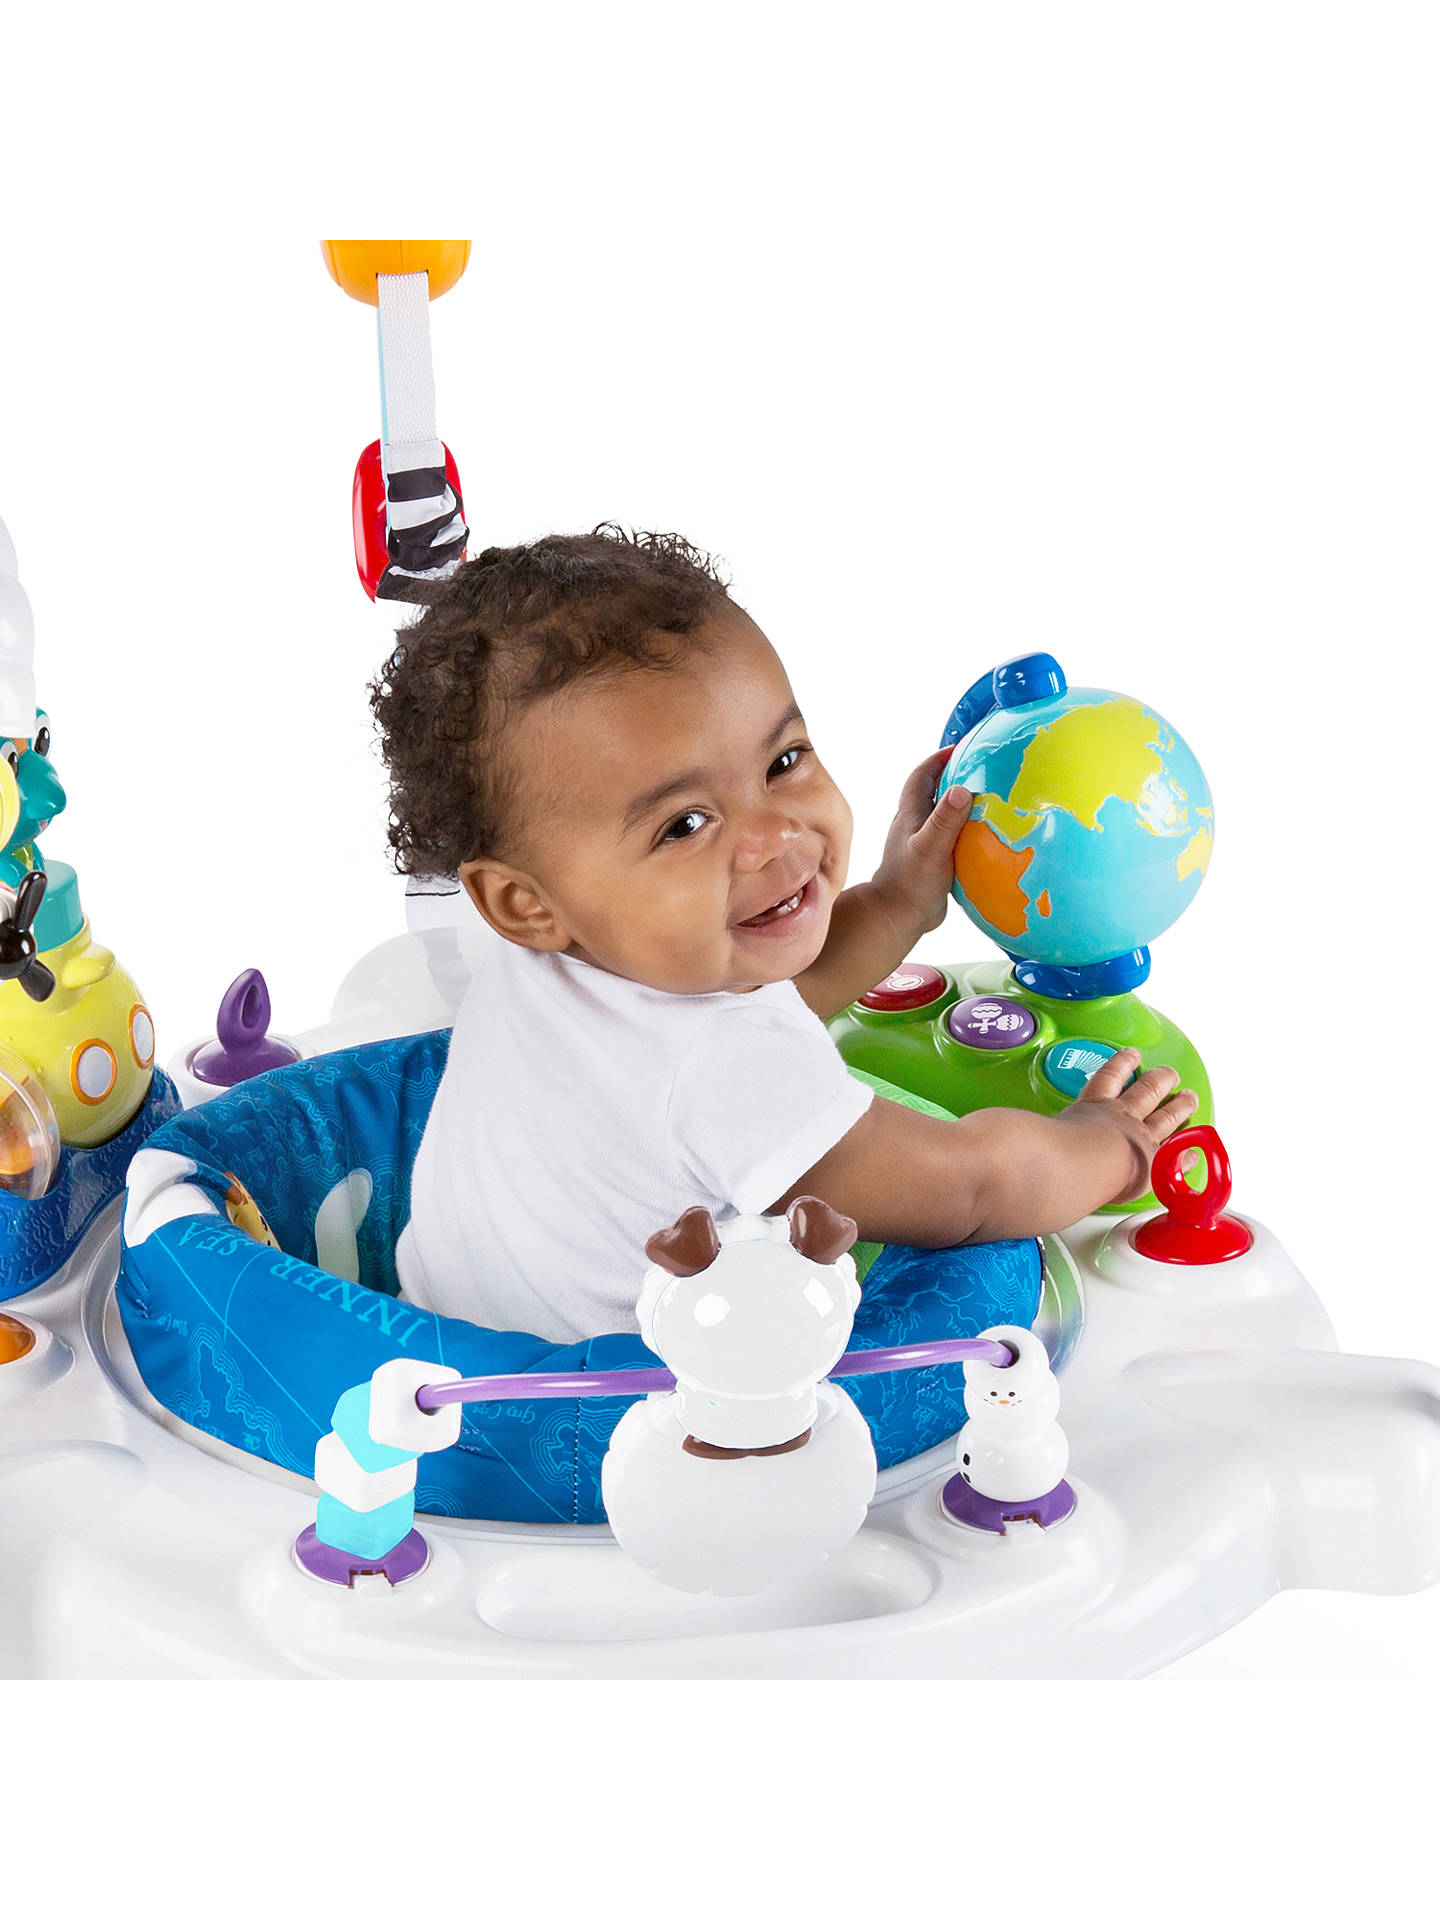 b32c067f5 Baby Einstein Journey Of Discovery Jumper at John Lewis   Partners